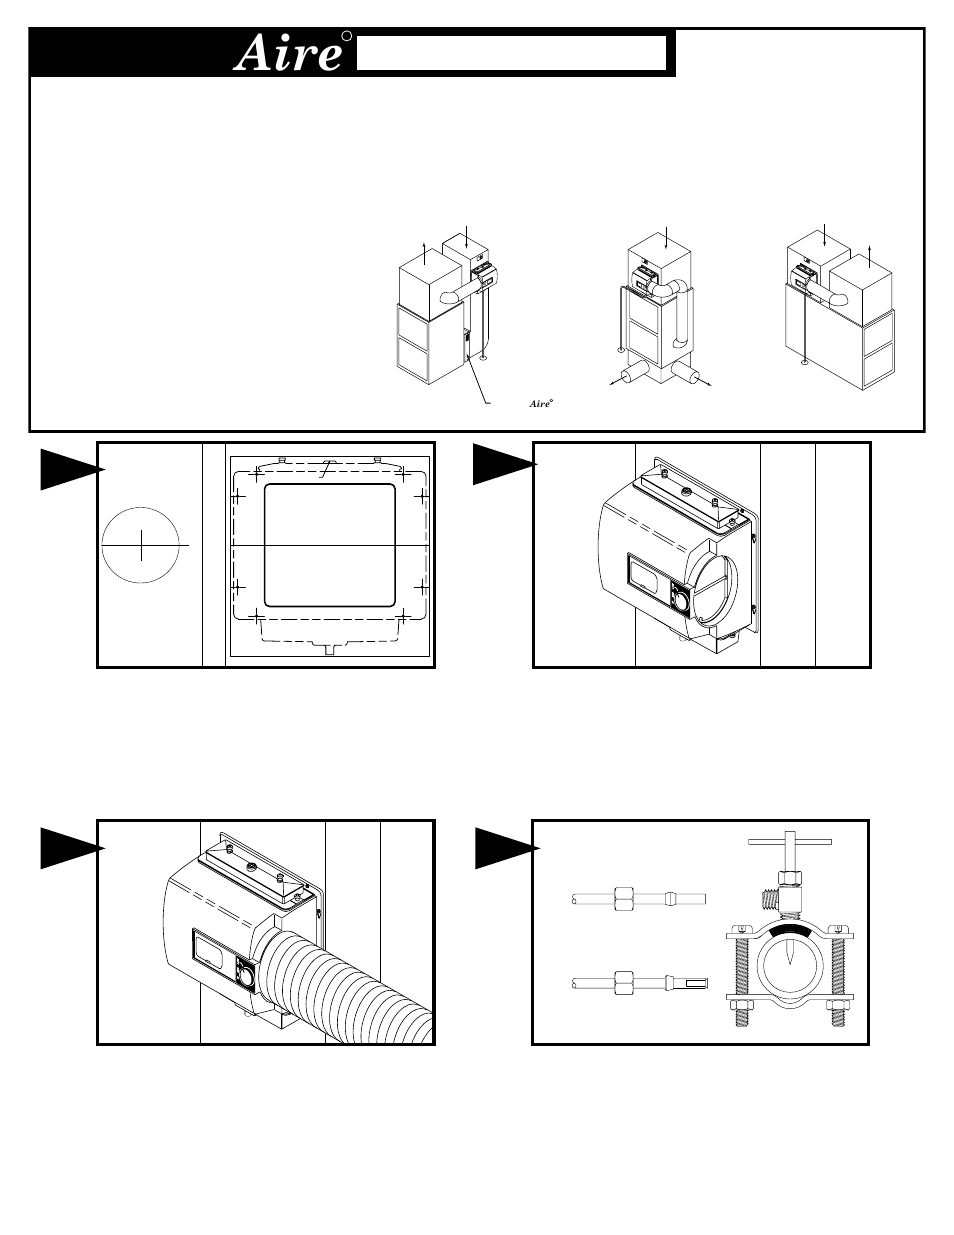 Wiring Diagram For Honeywell Thermostat Th5110d1006 : Rth honeywell thermostat wiring diagram